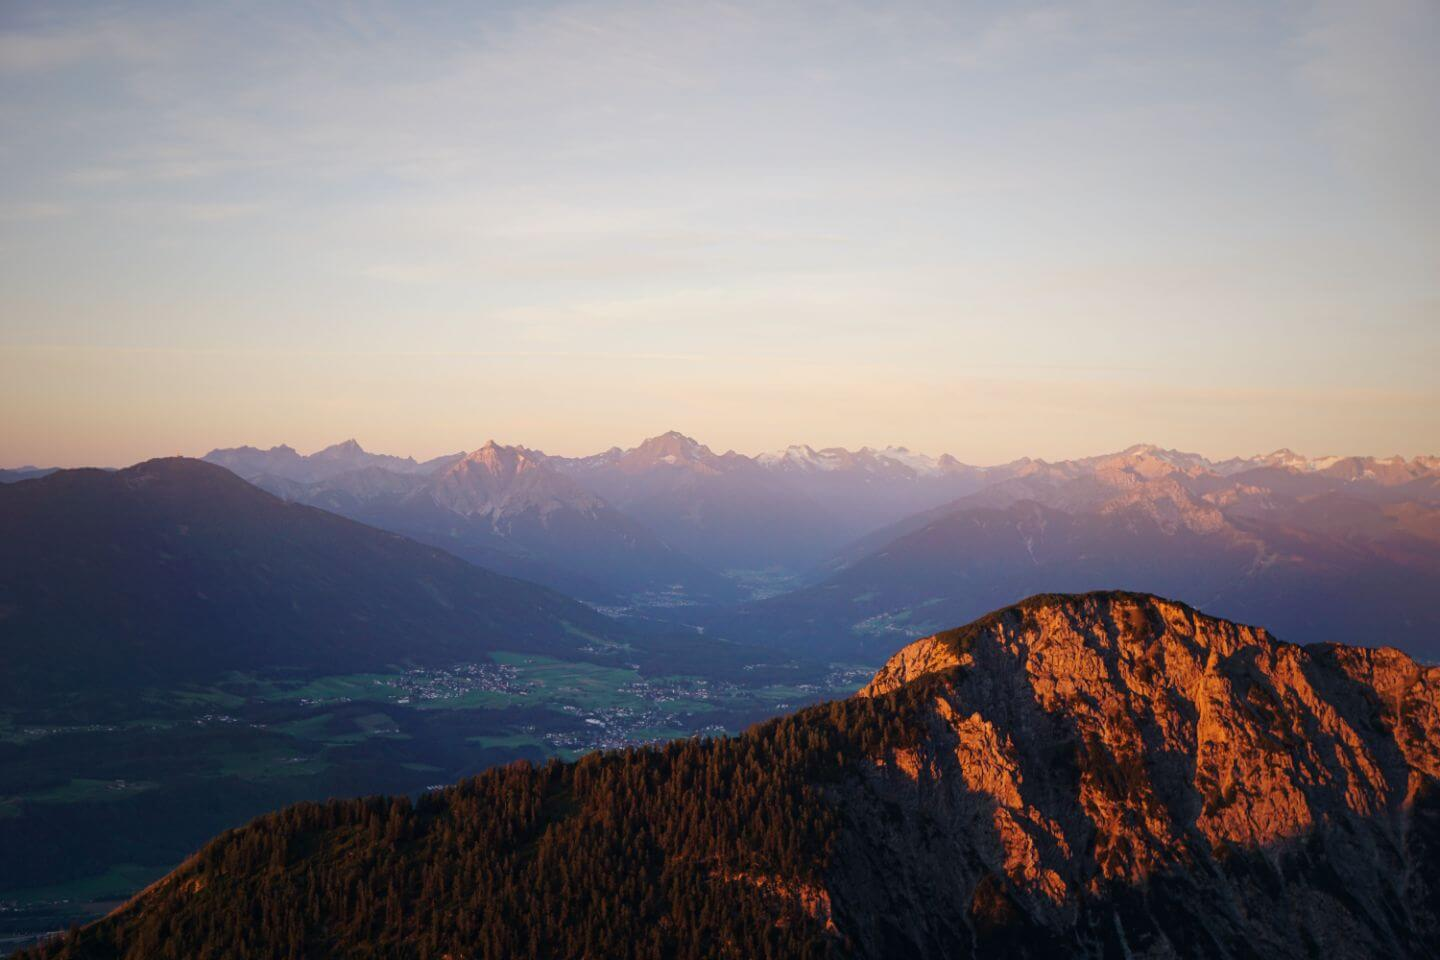 Sunrise, Inntal Valley, View from the Karwendel Mountains